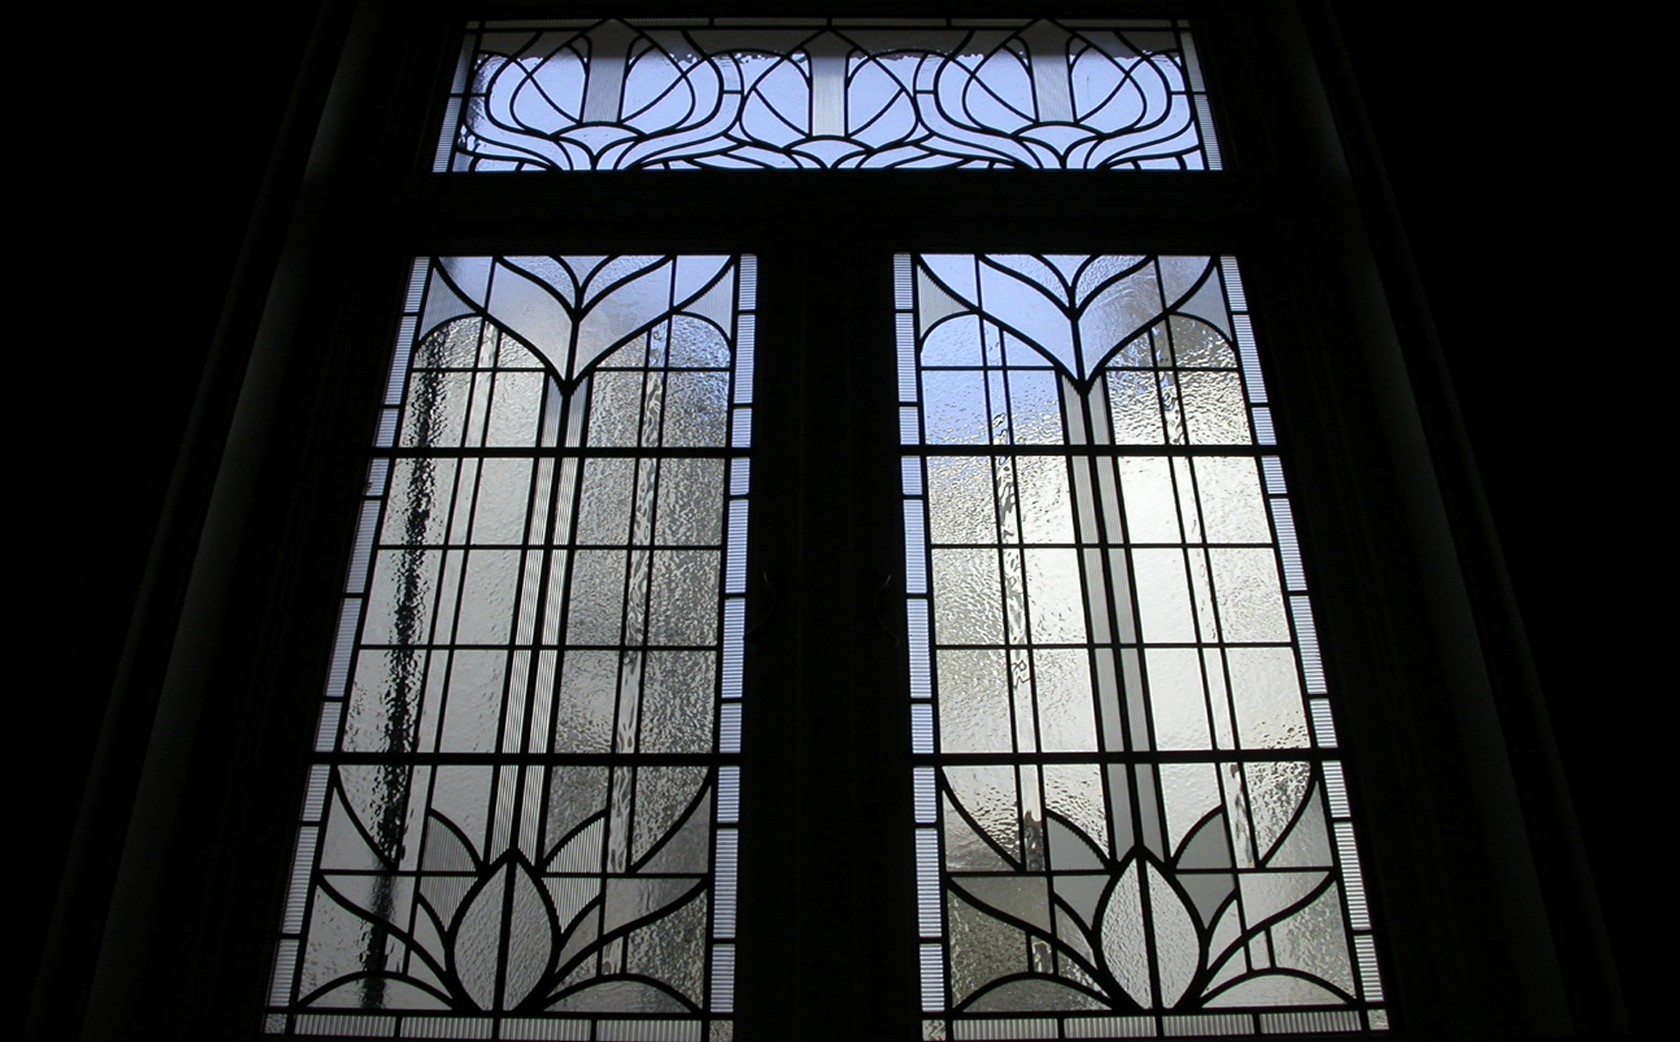 Art Nouveau Stained Glass windows on light well  for light maximisation & view screening